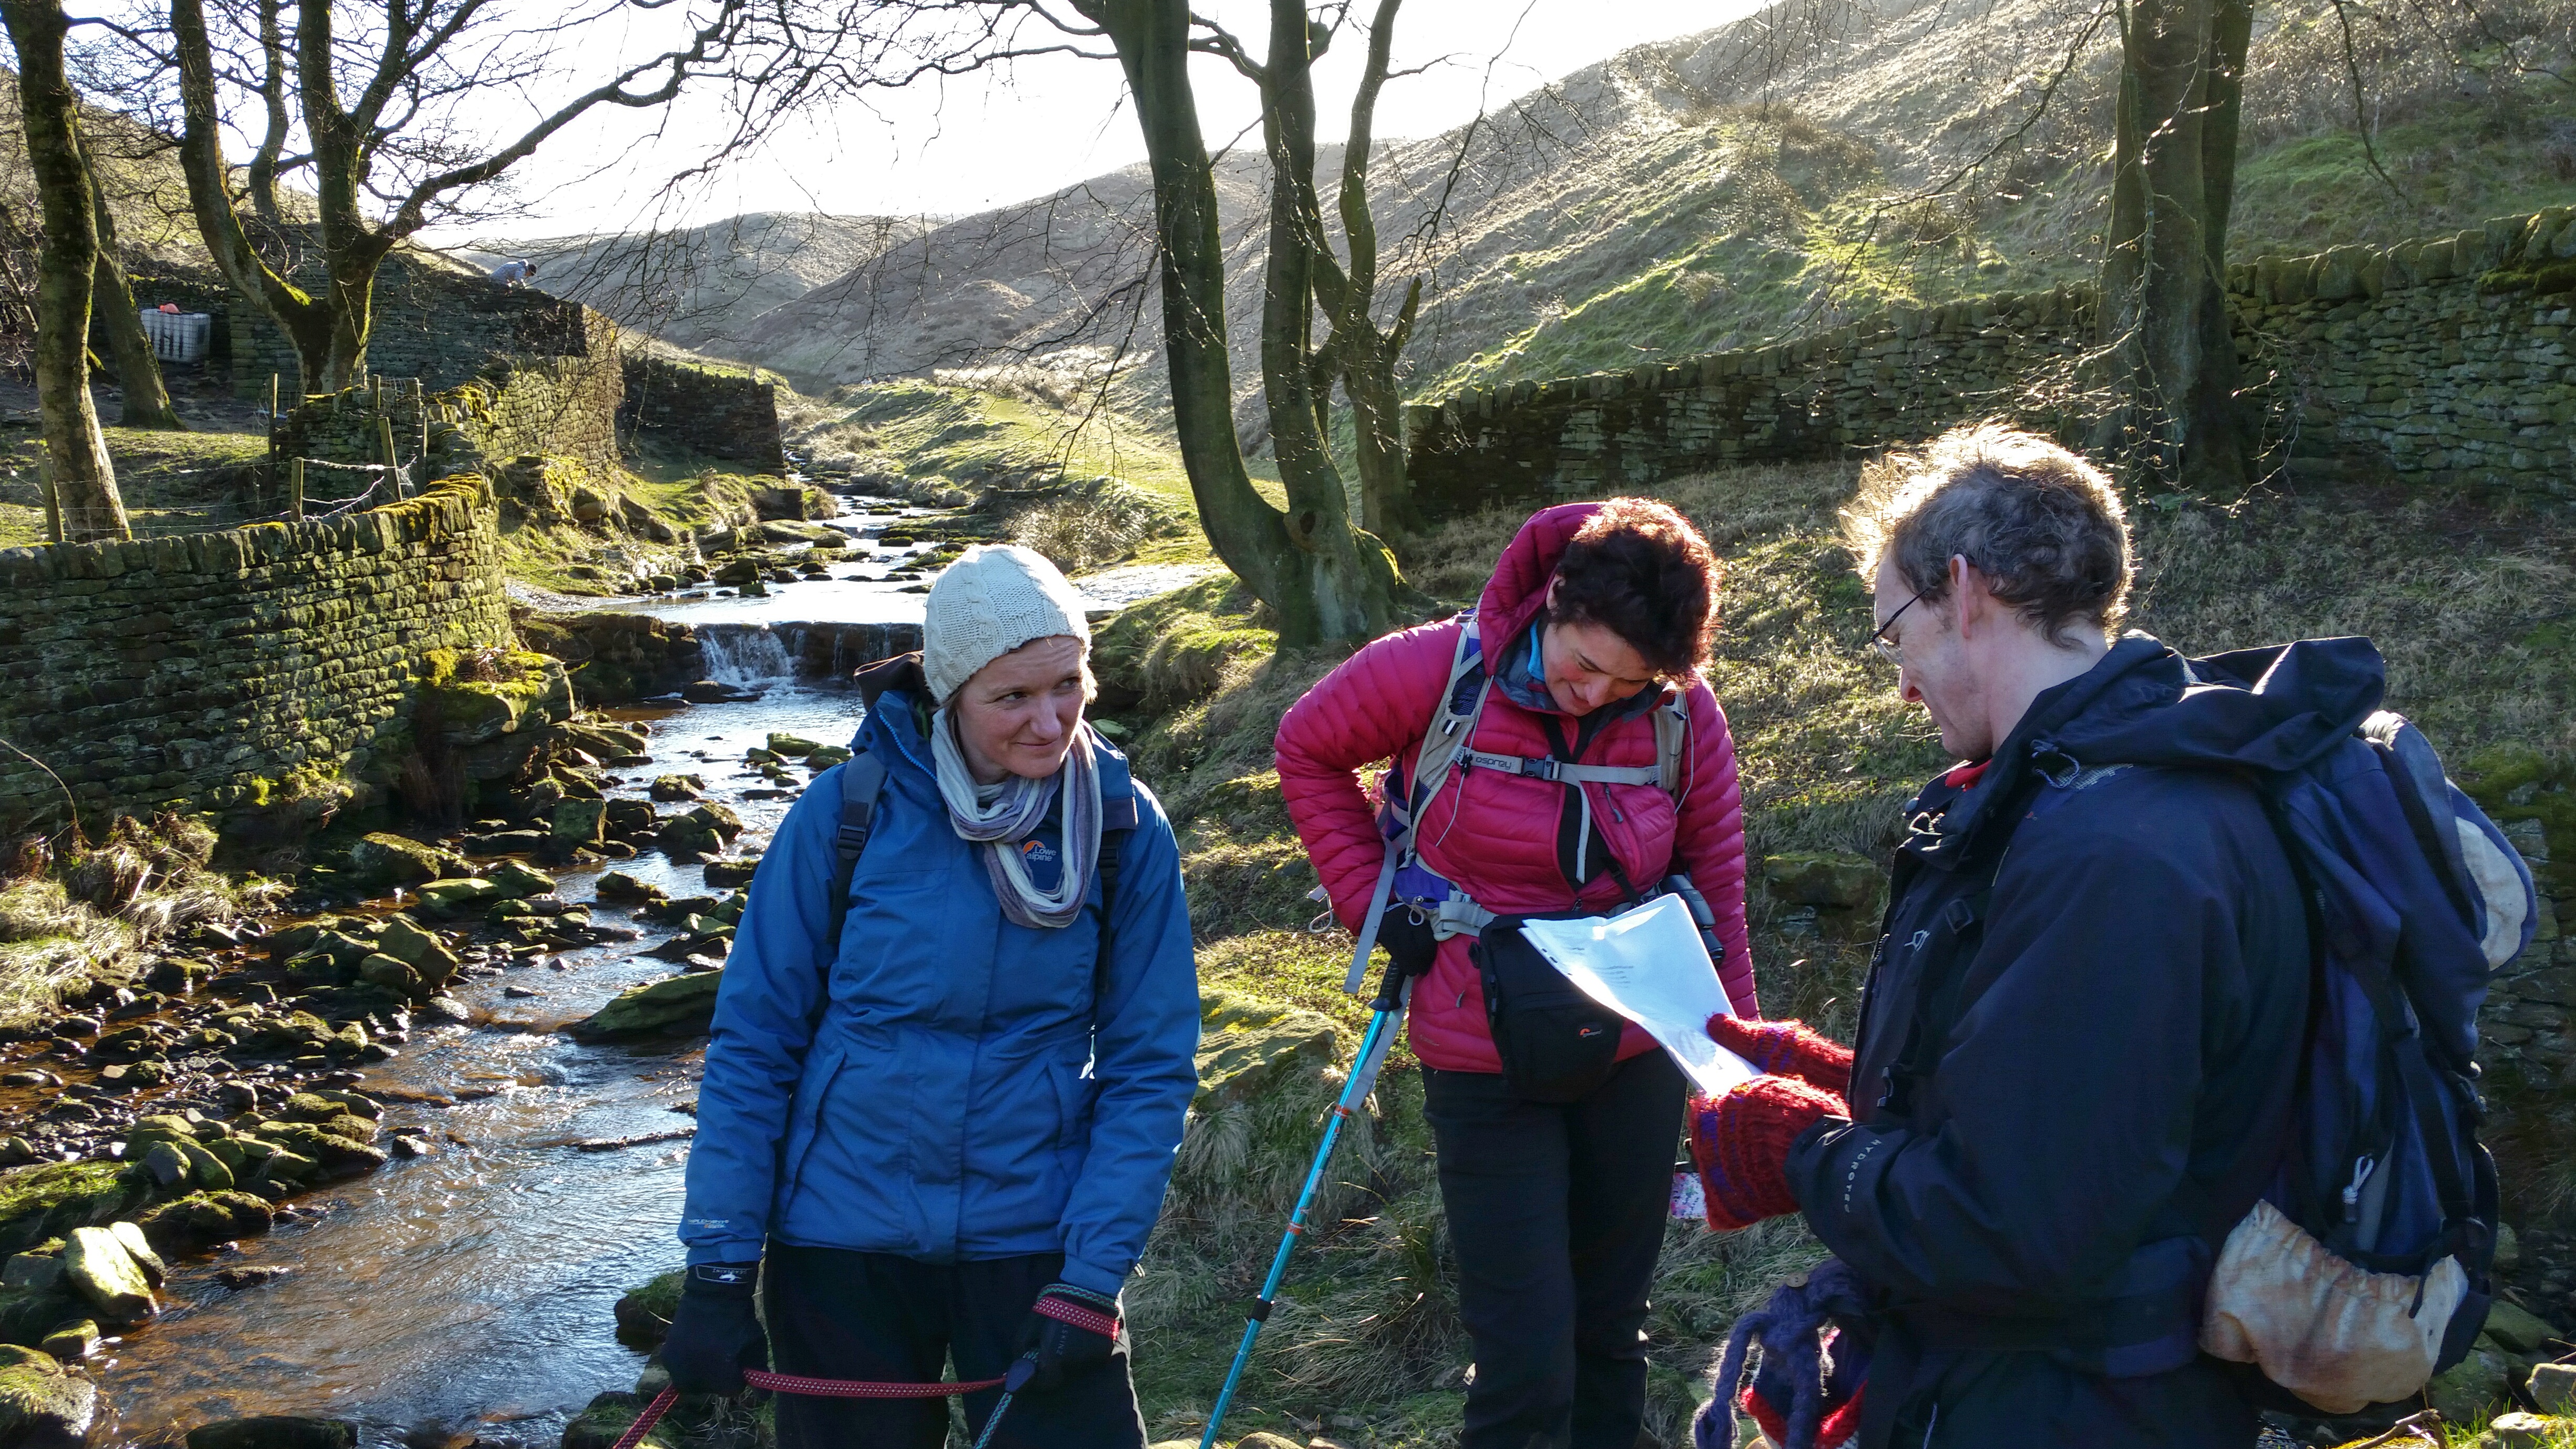 Marsden poetry Trail reading of a poem